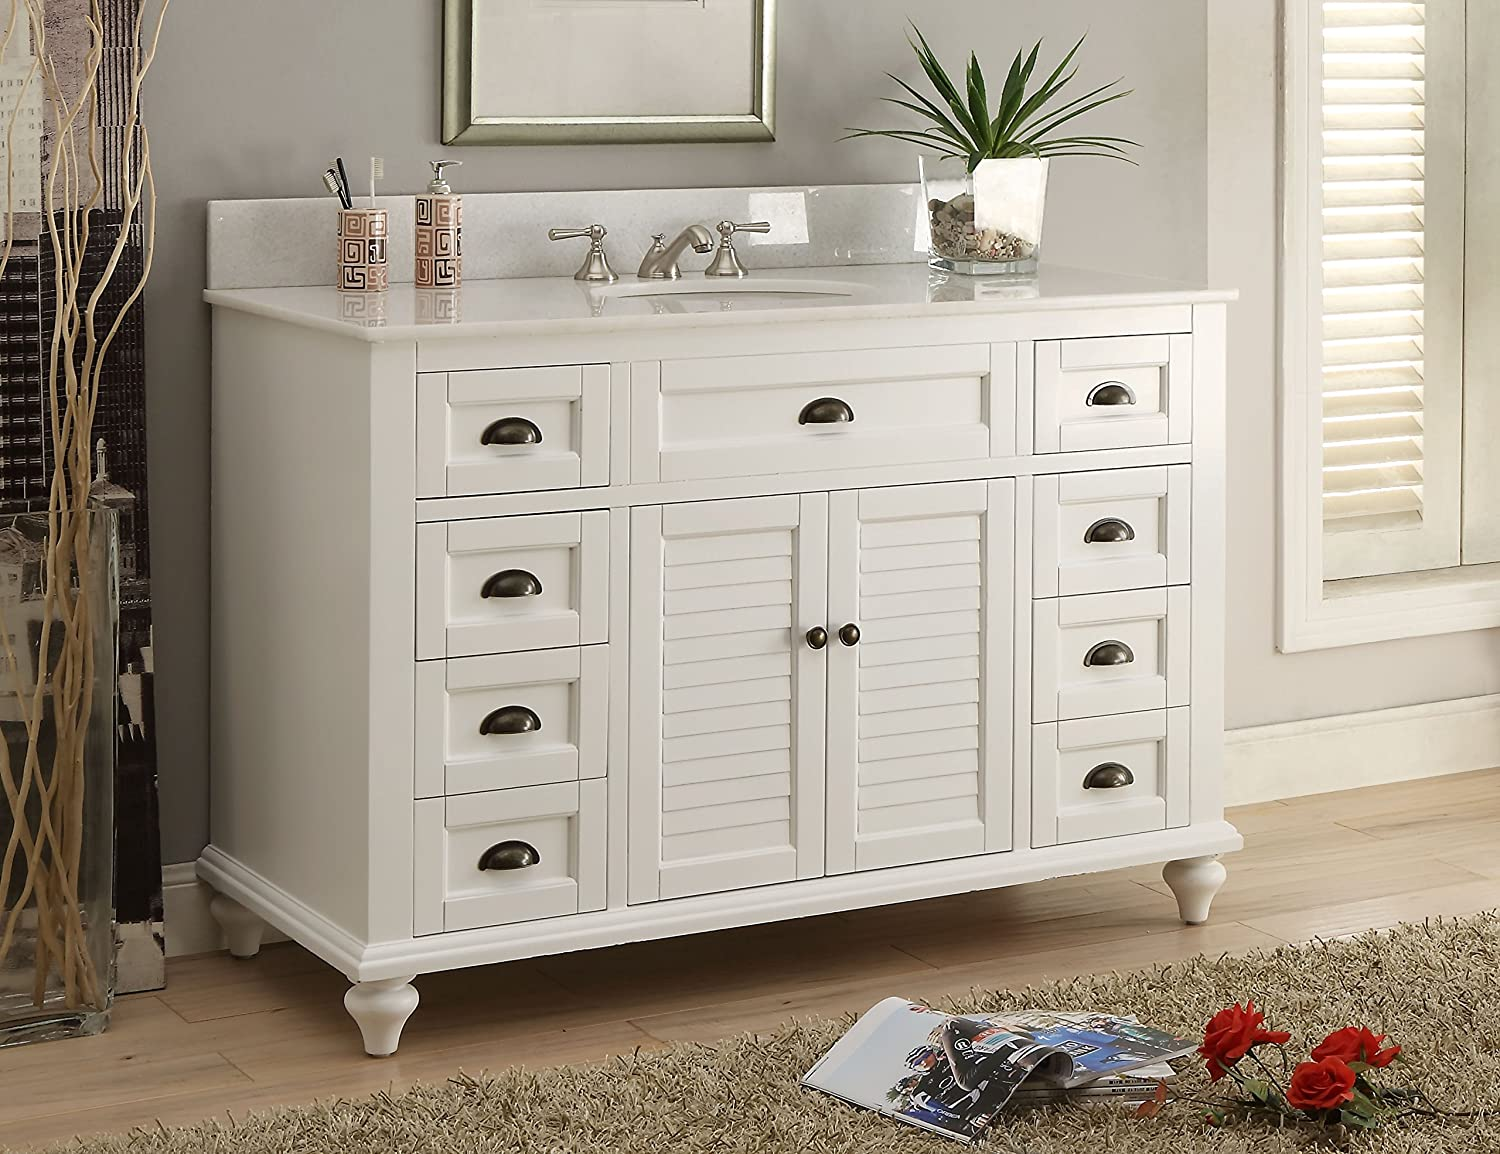 Glennville 49 Cottage Bathroom Vanity Cabinet Set in White GD28327